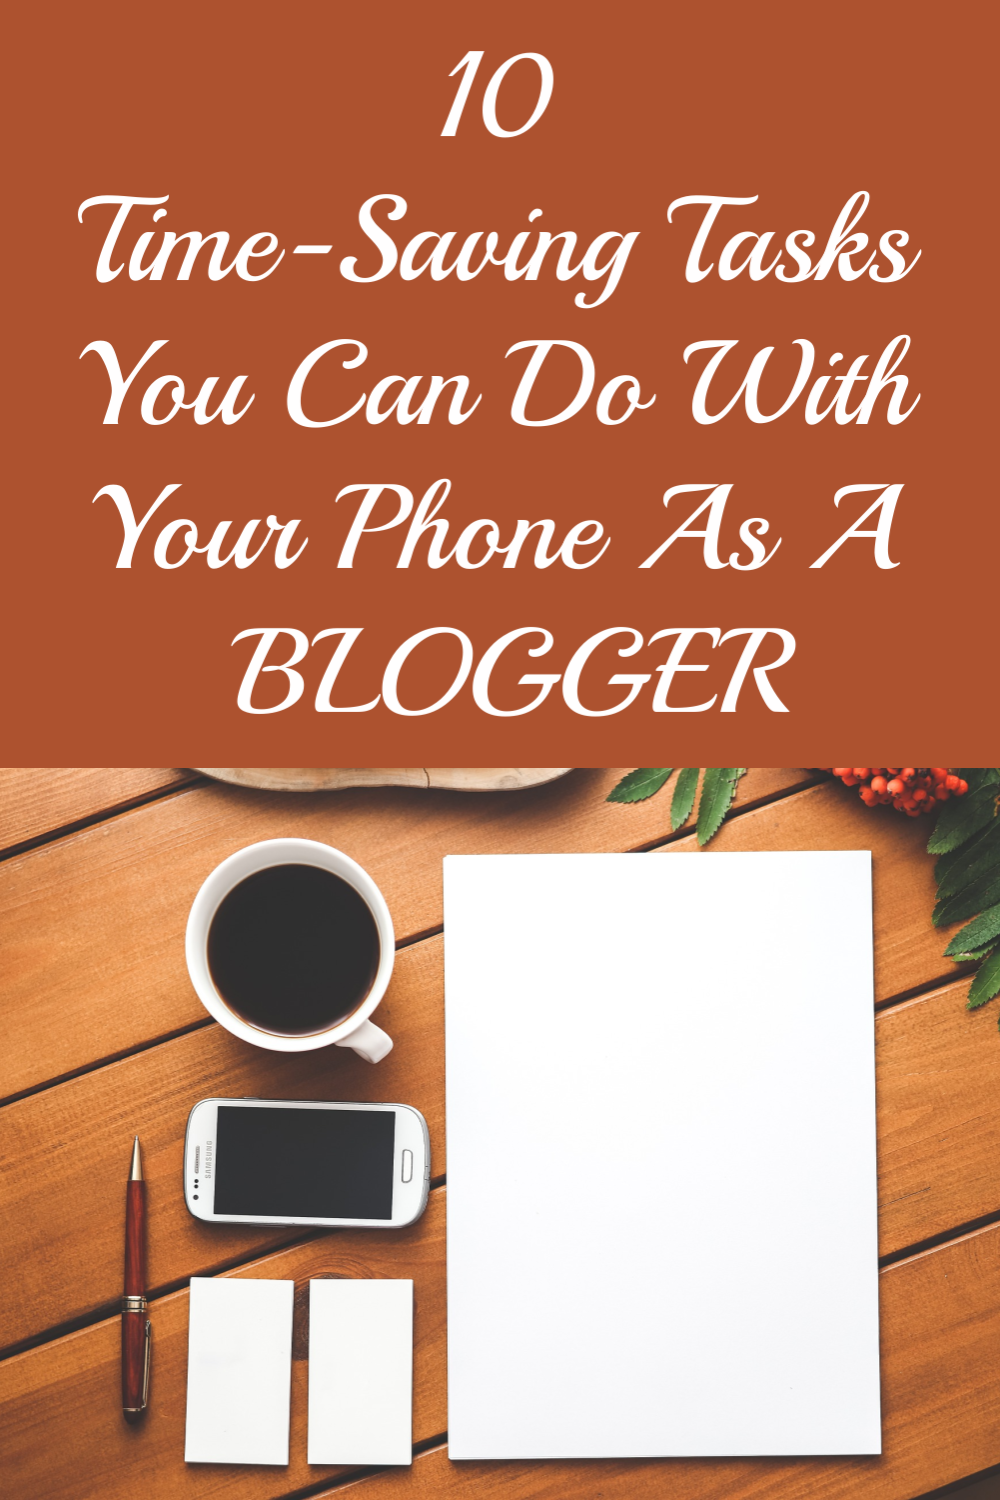 10 TIME-SAVING TASKS YOU CAN DO WITH YOUR PHONE AS A BLOGGER